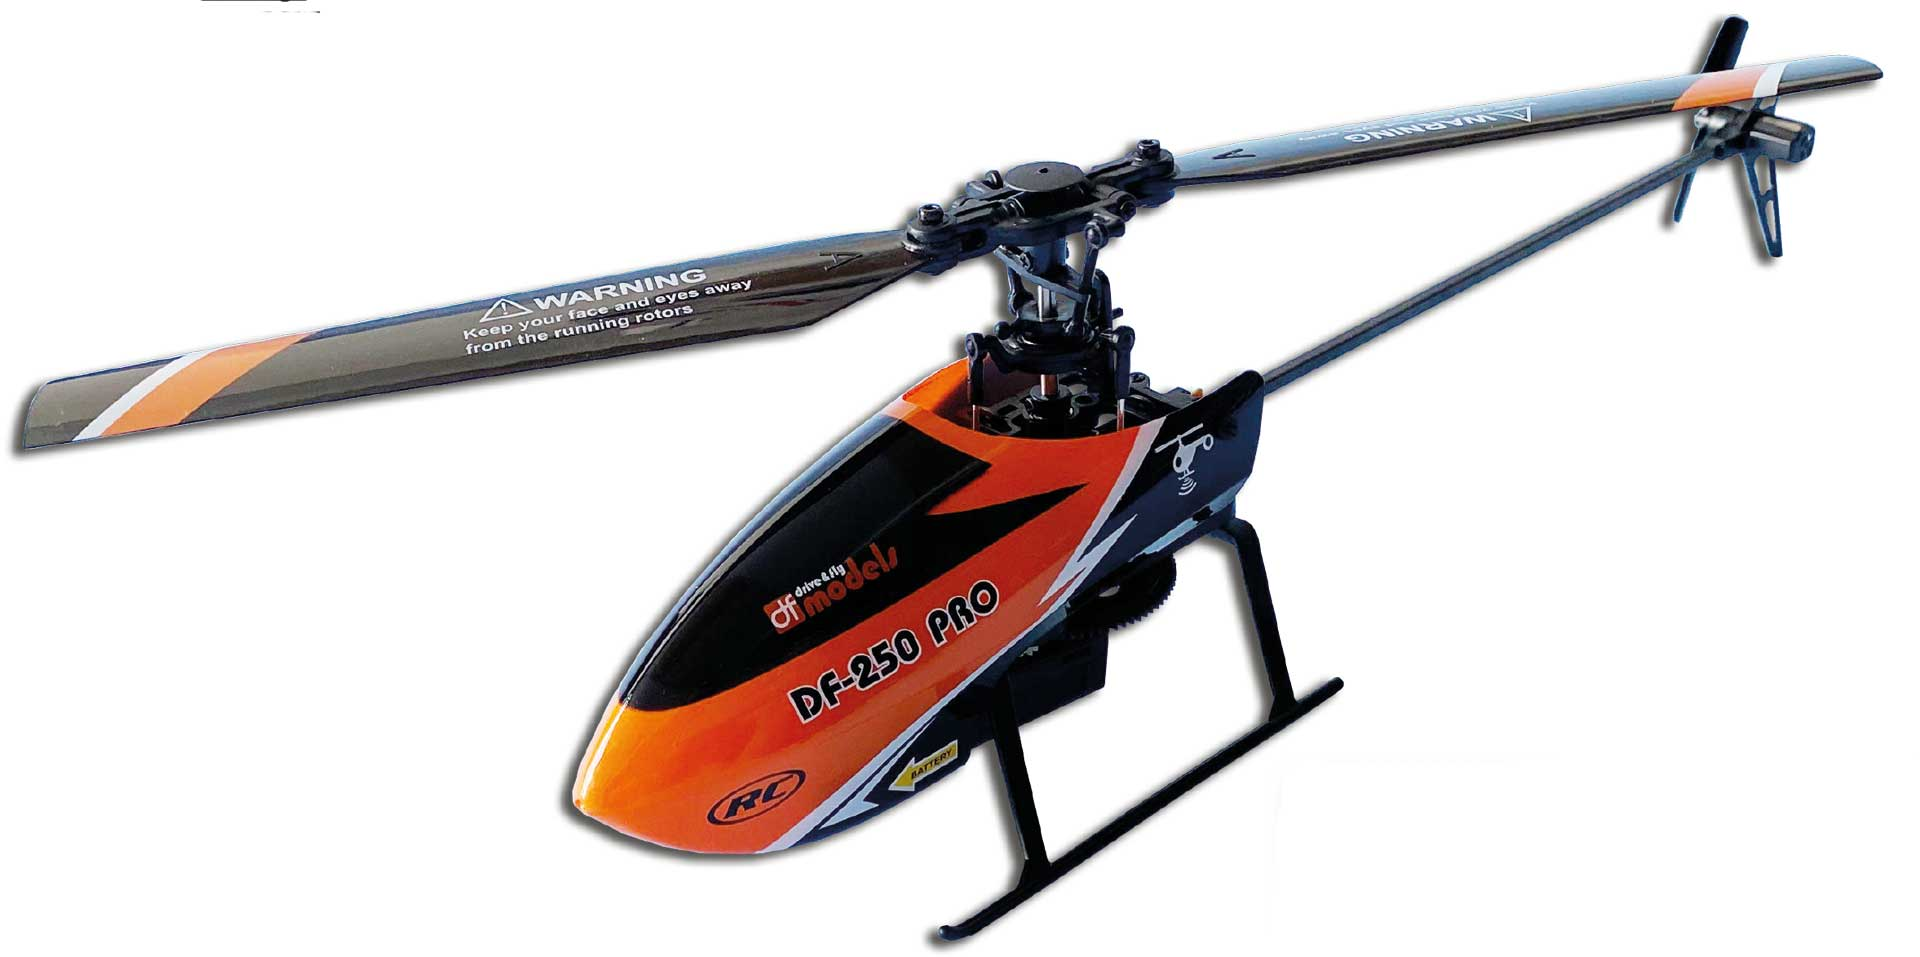 DRIVE & FLY MODELS DF-250 Helicopter RTF 2,4GHz